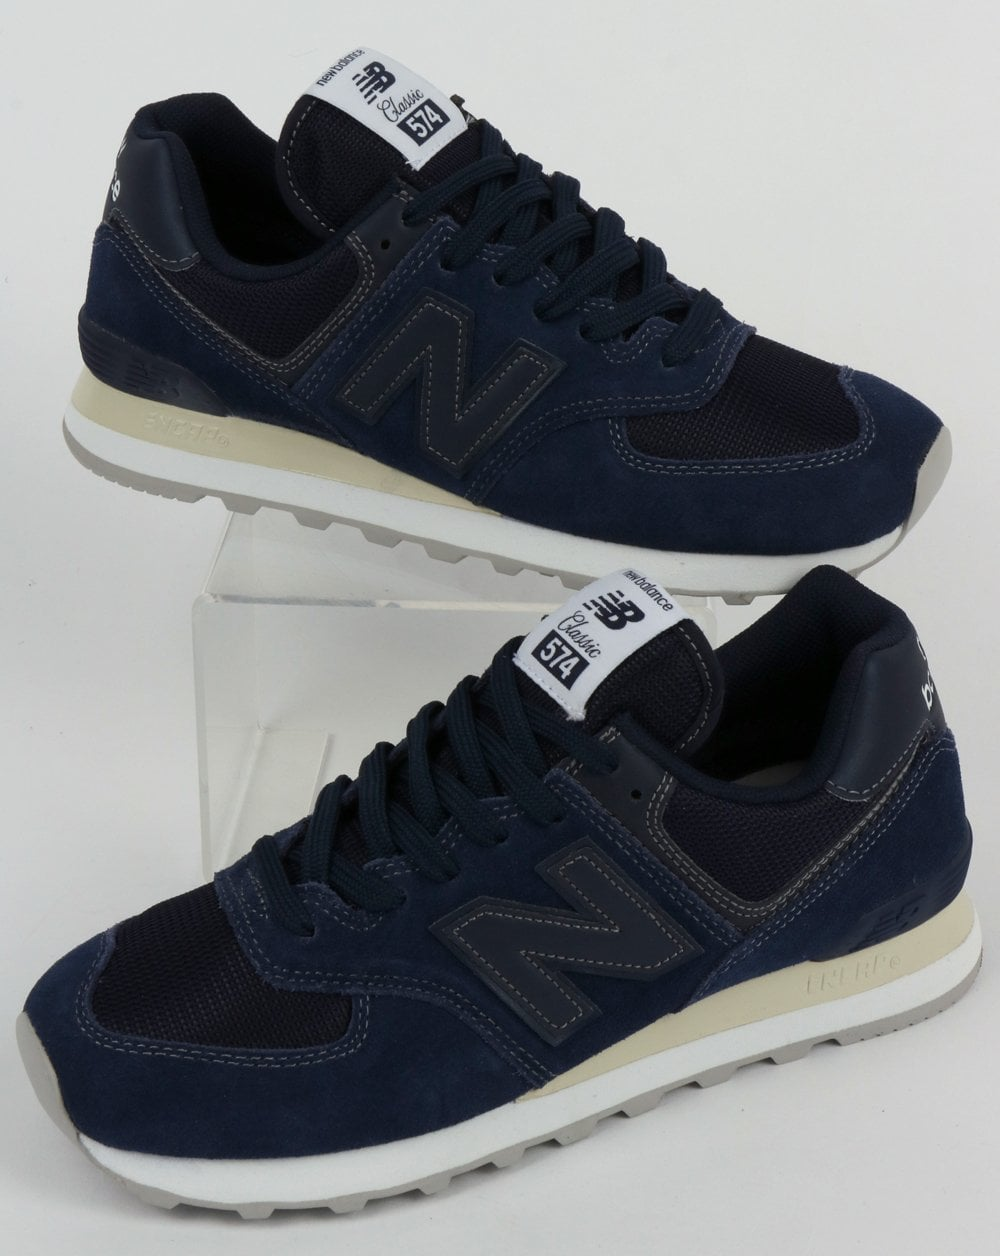 timeless design 2f429 7d475 New Balance 574 Trainers Navy Blue